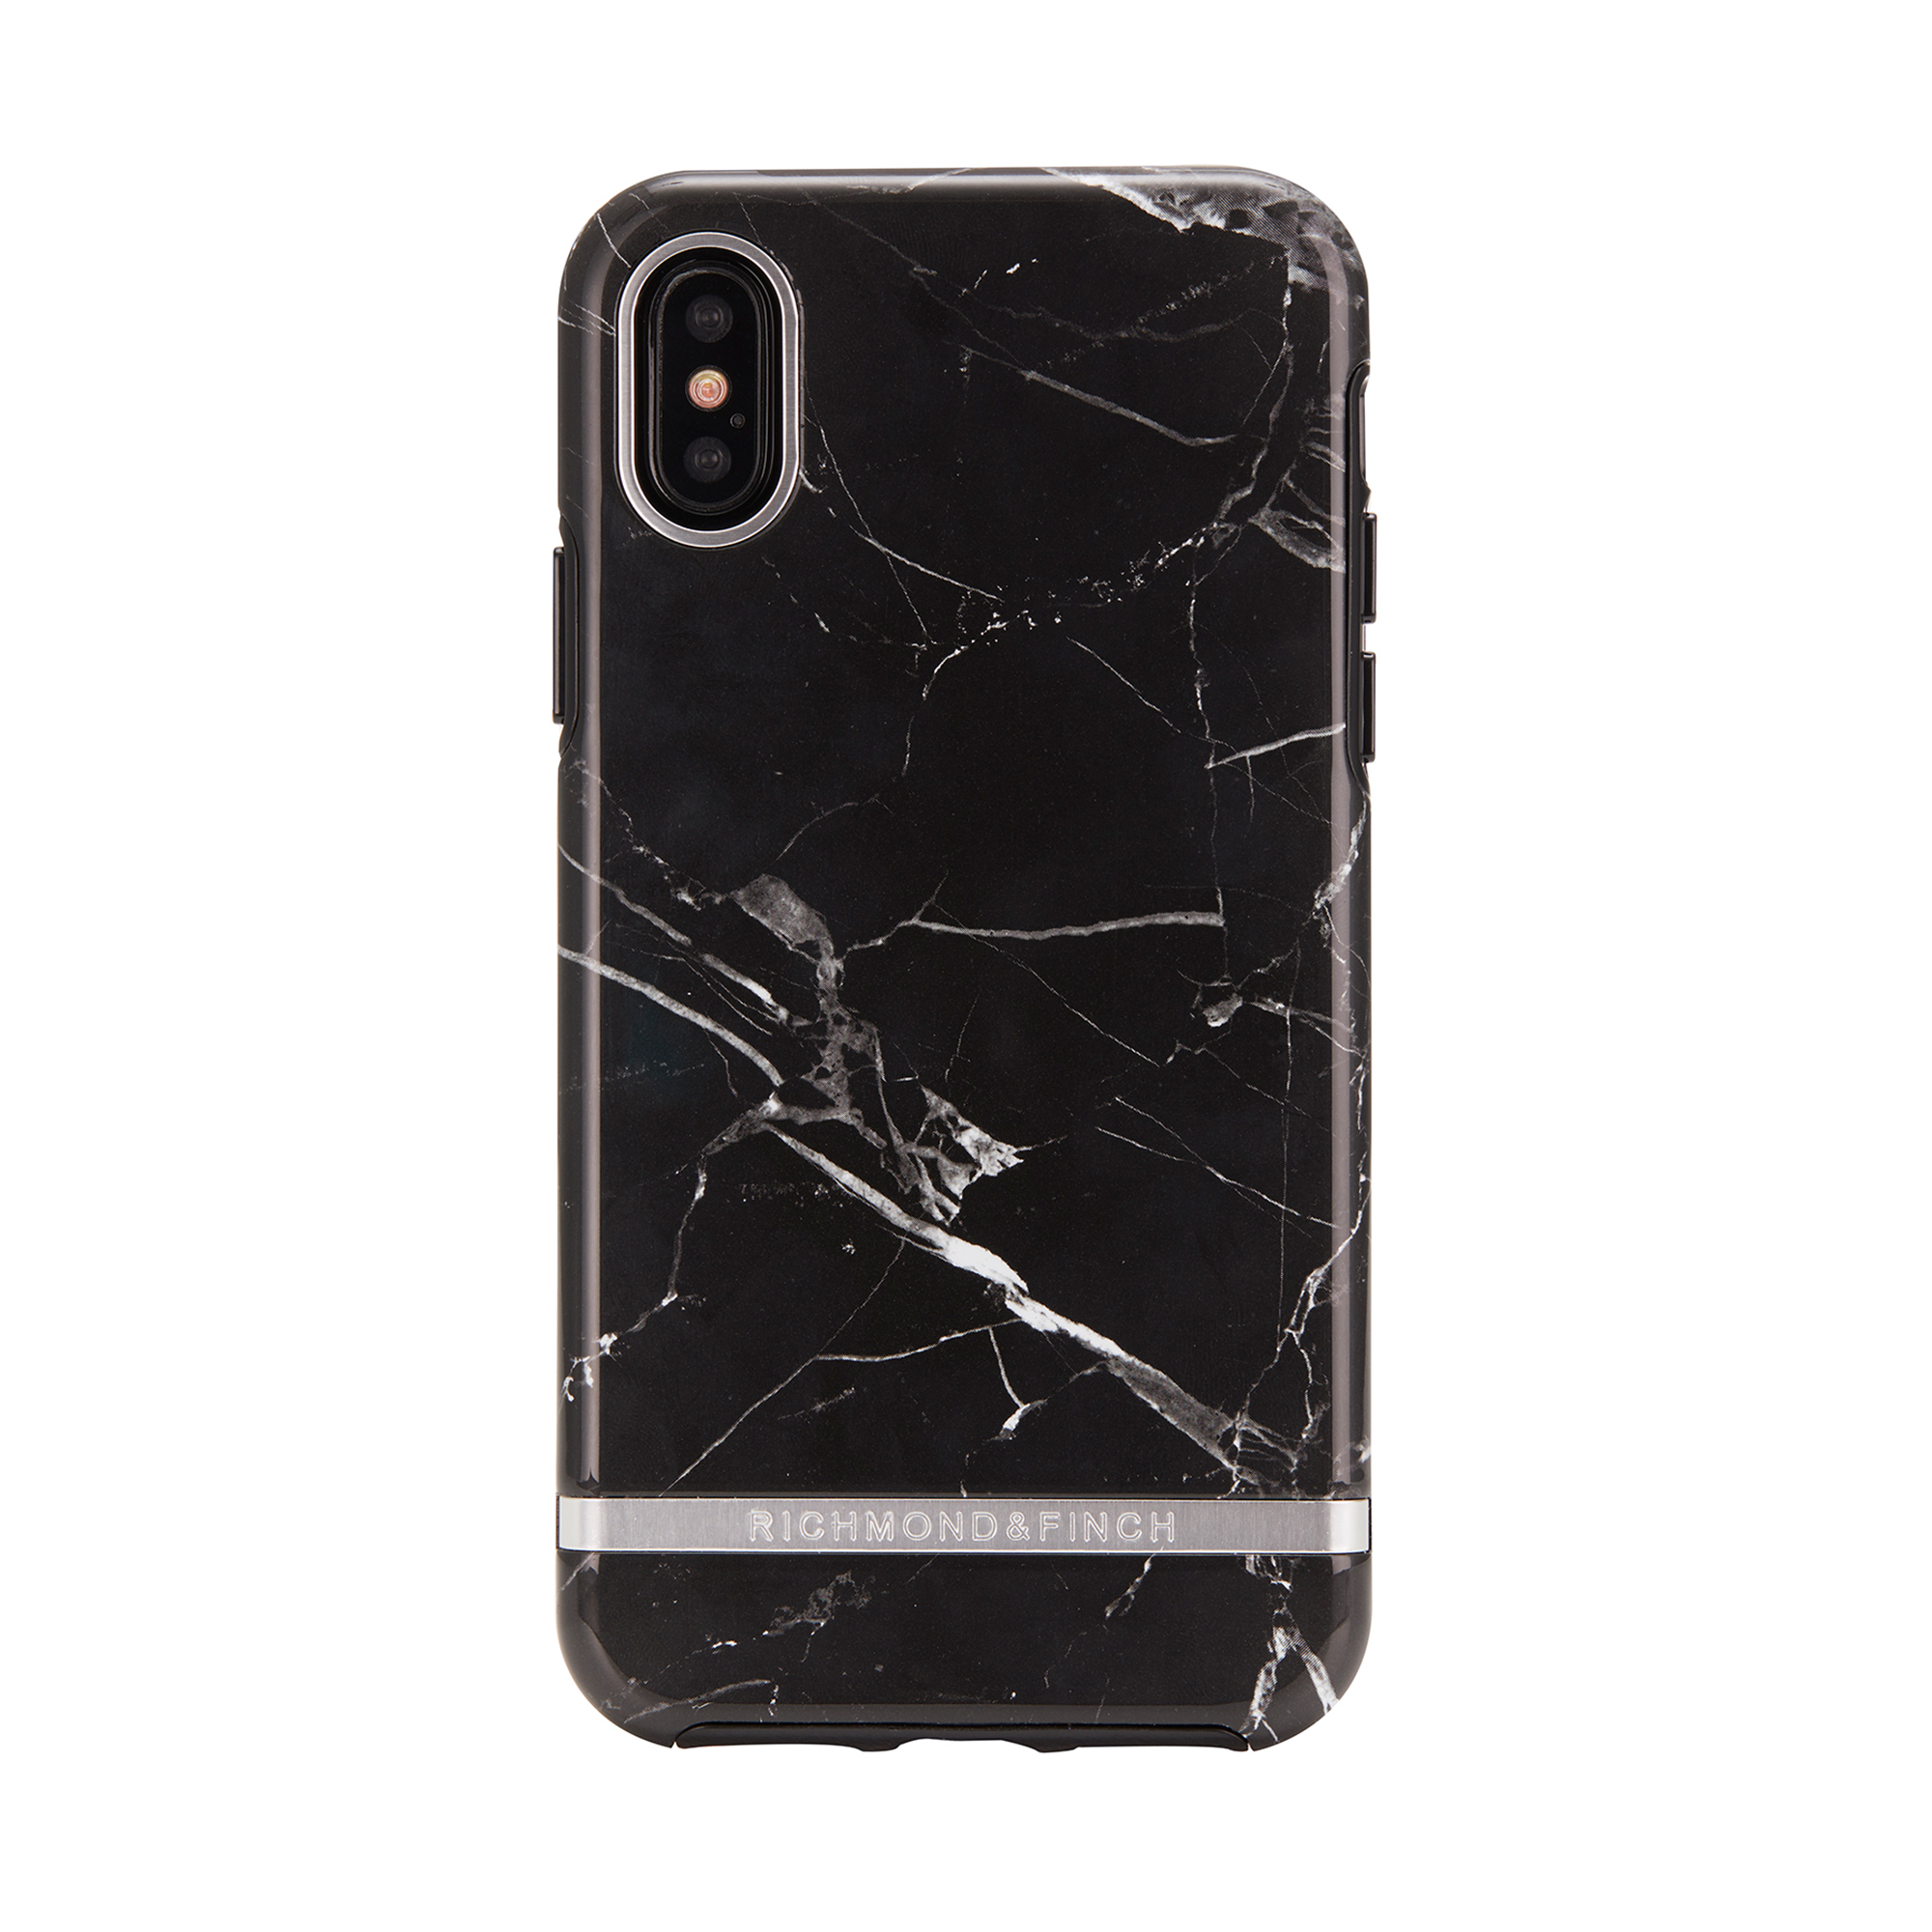 online retailer 8e2e4 b96d0 Freedom Case For iPhone XS Max - Black Marble